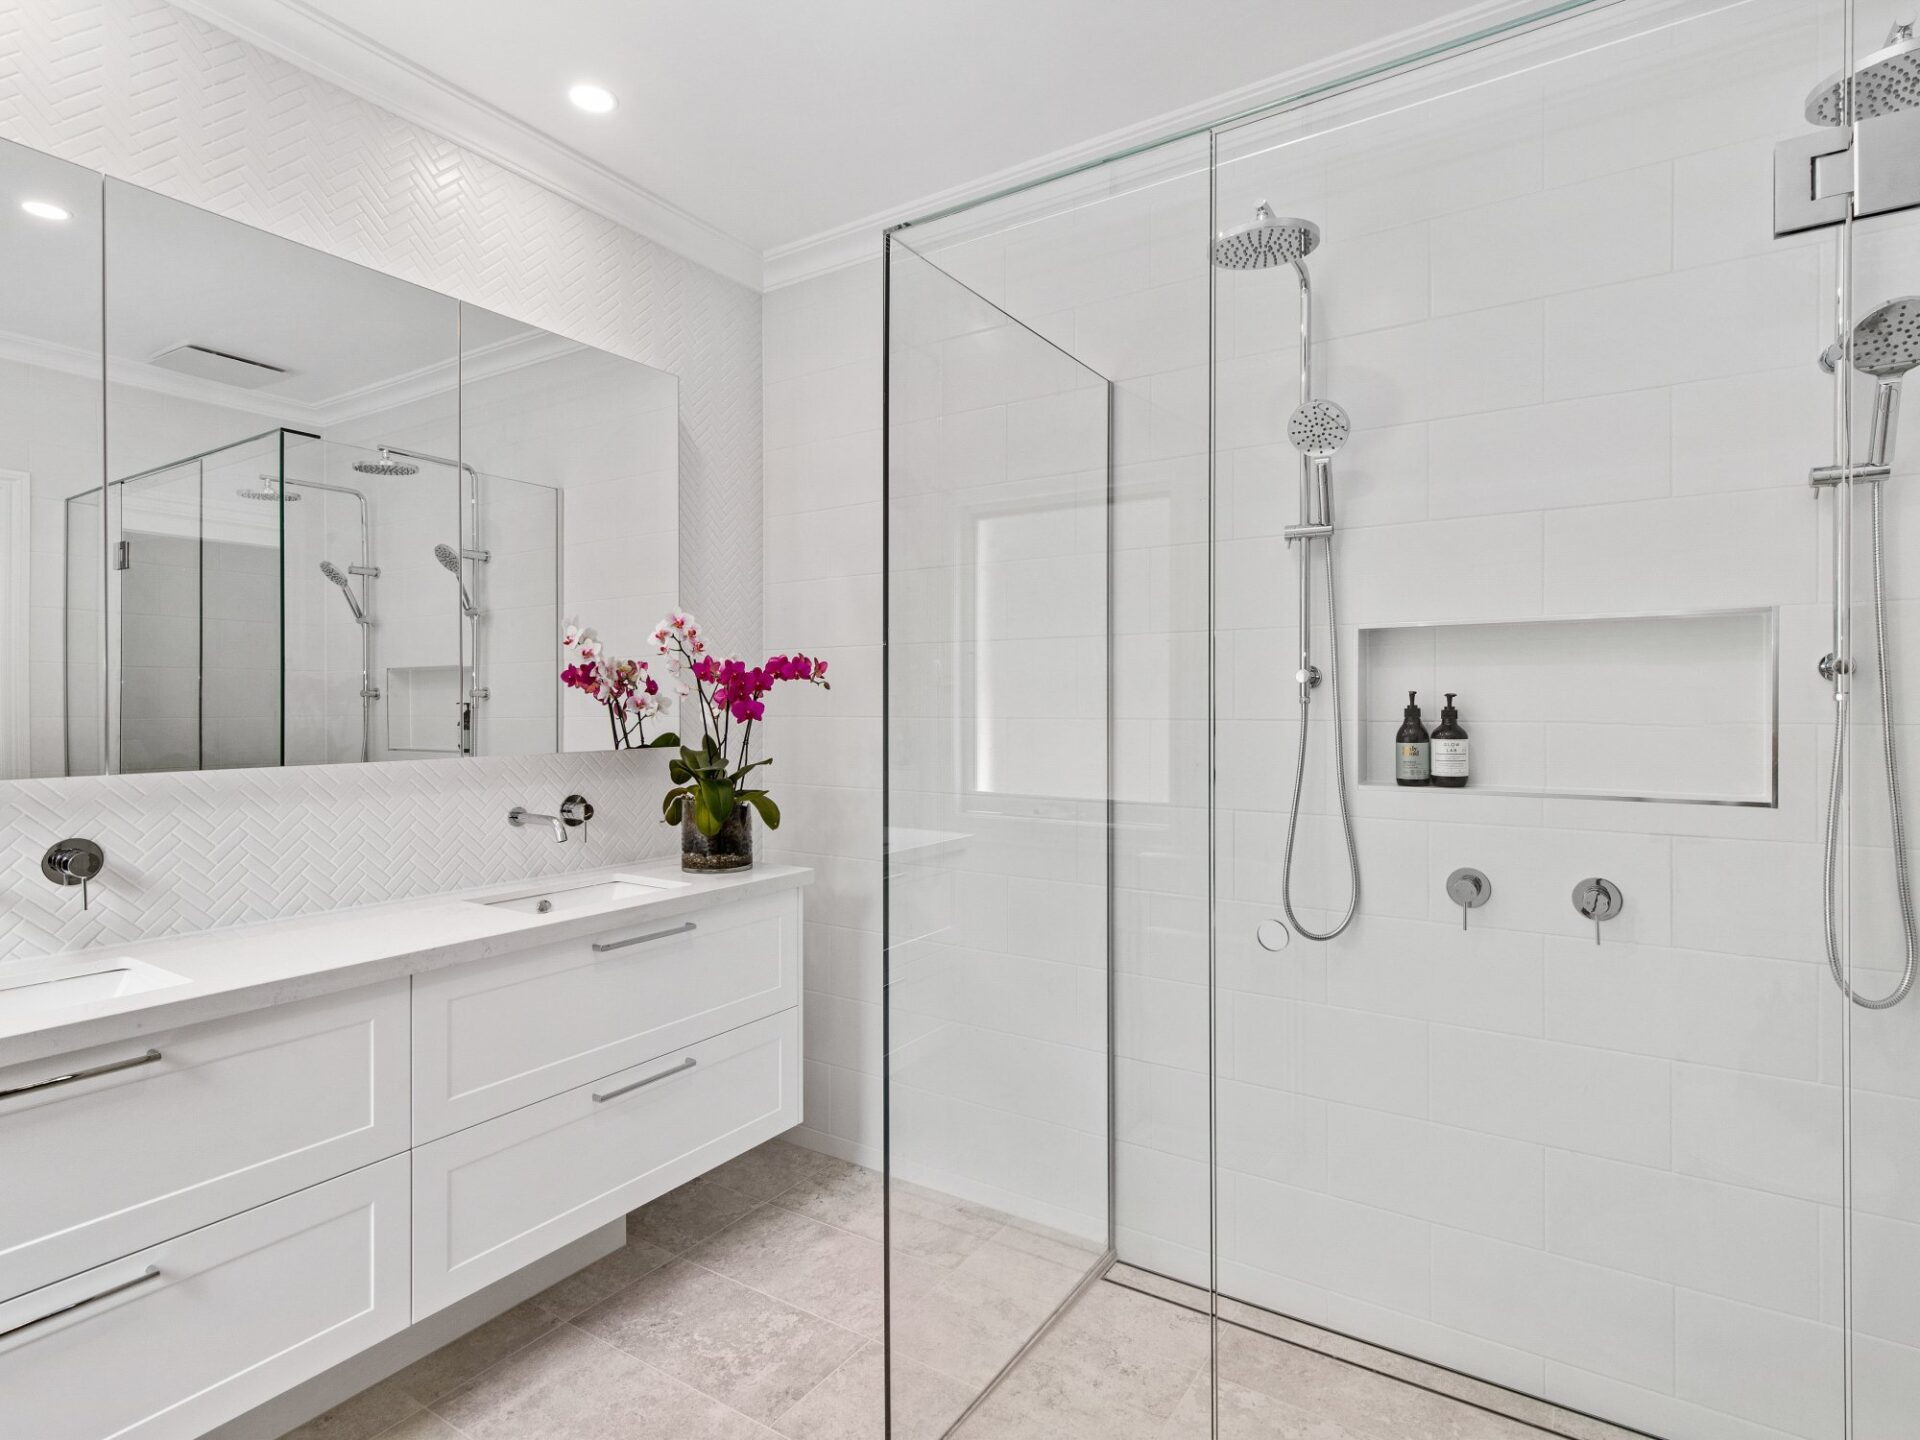 Shower & Basin Renovations Services - Bayview Renovations